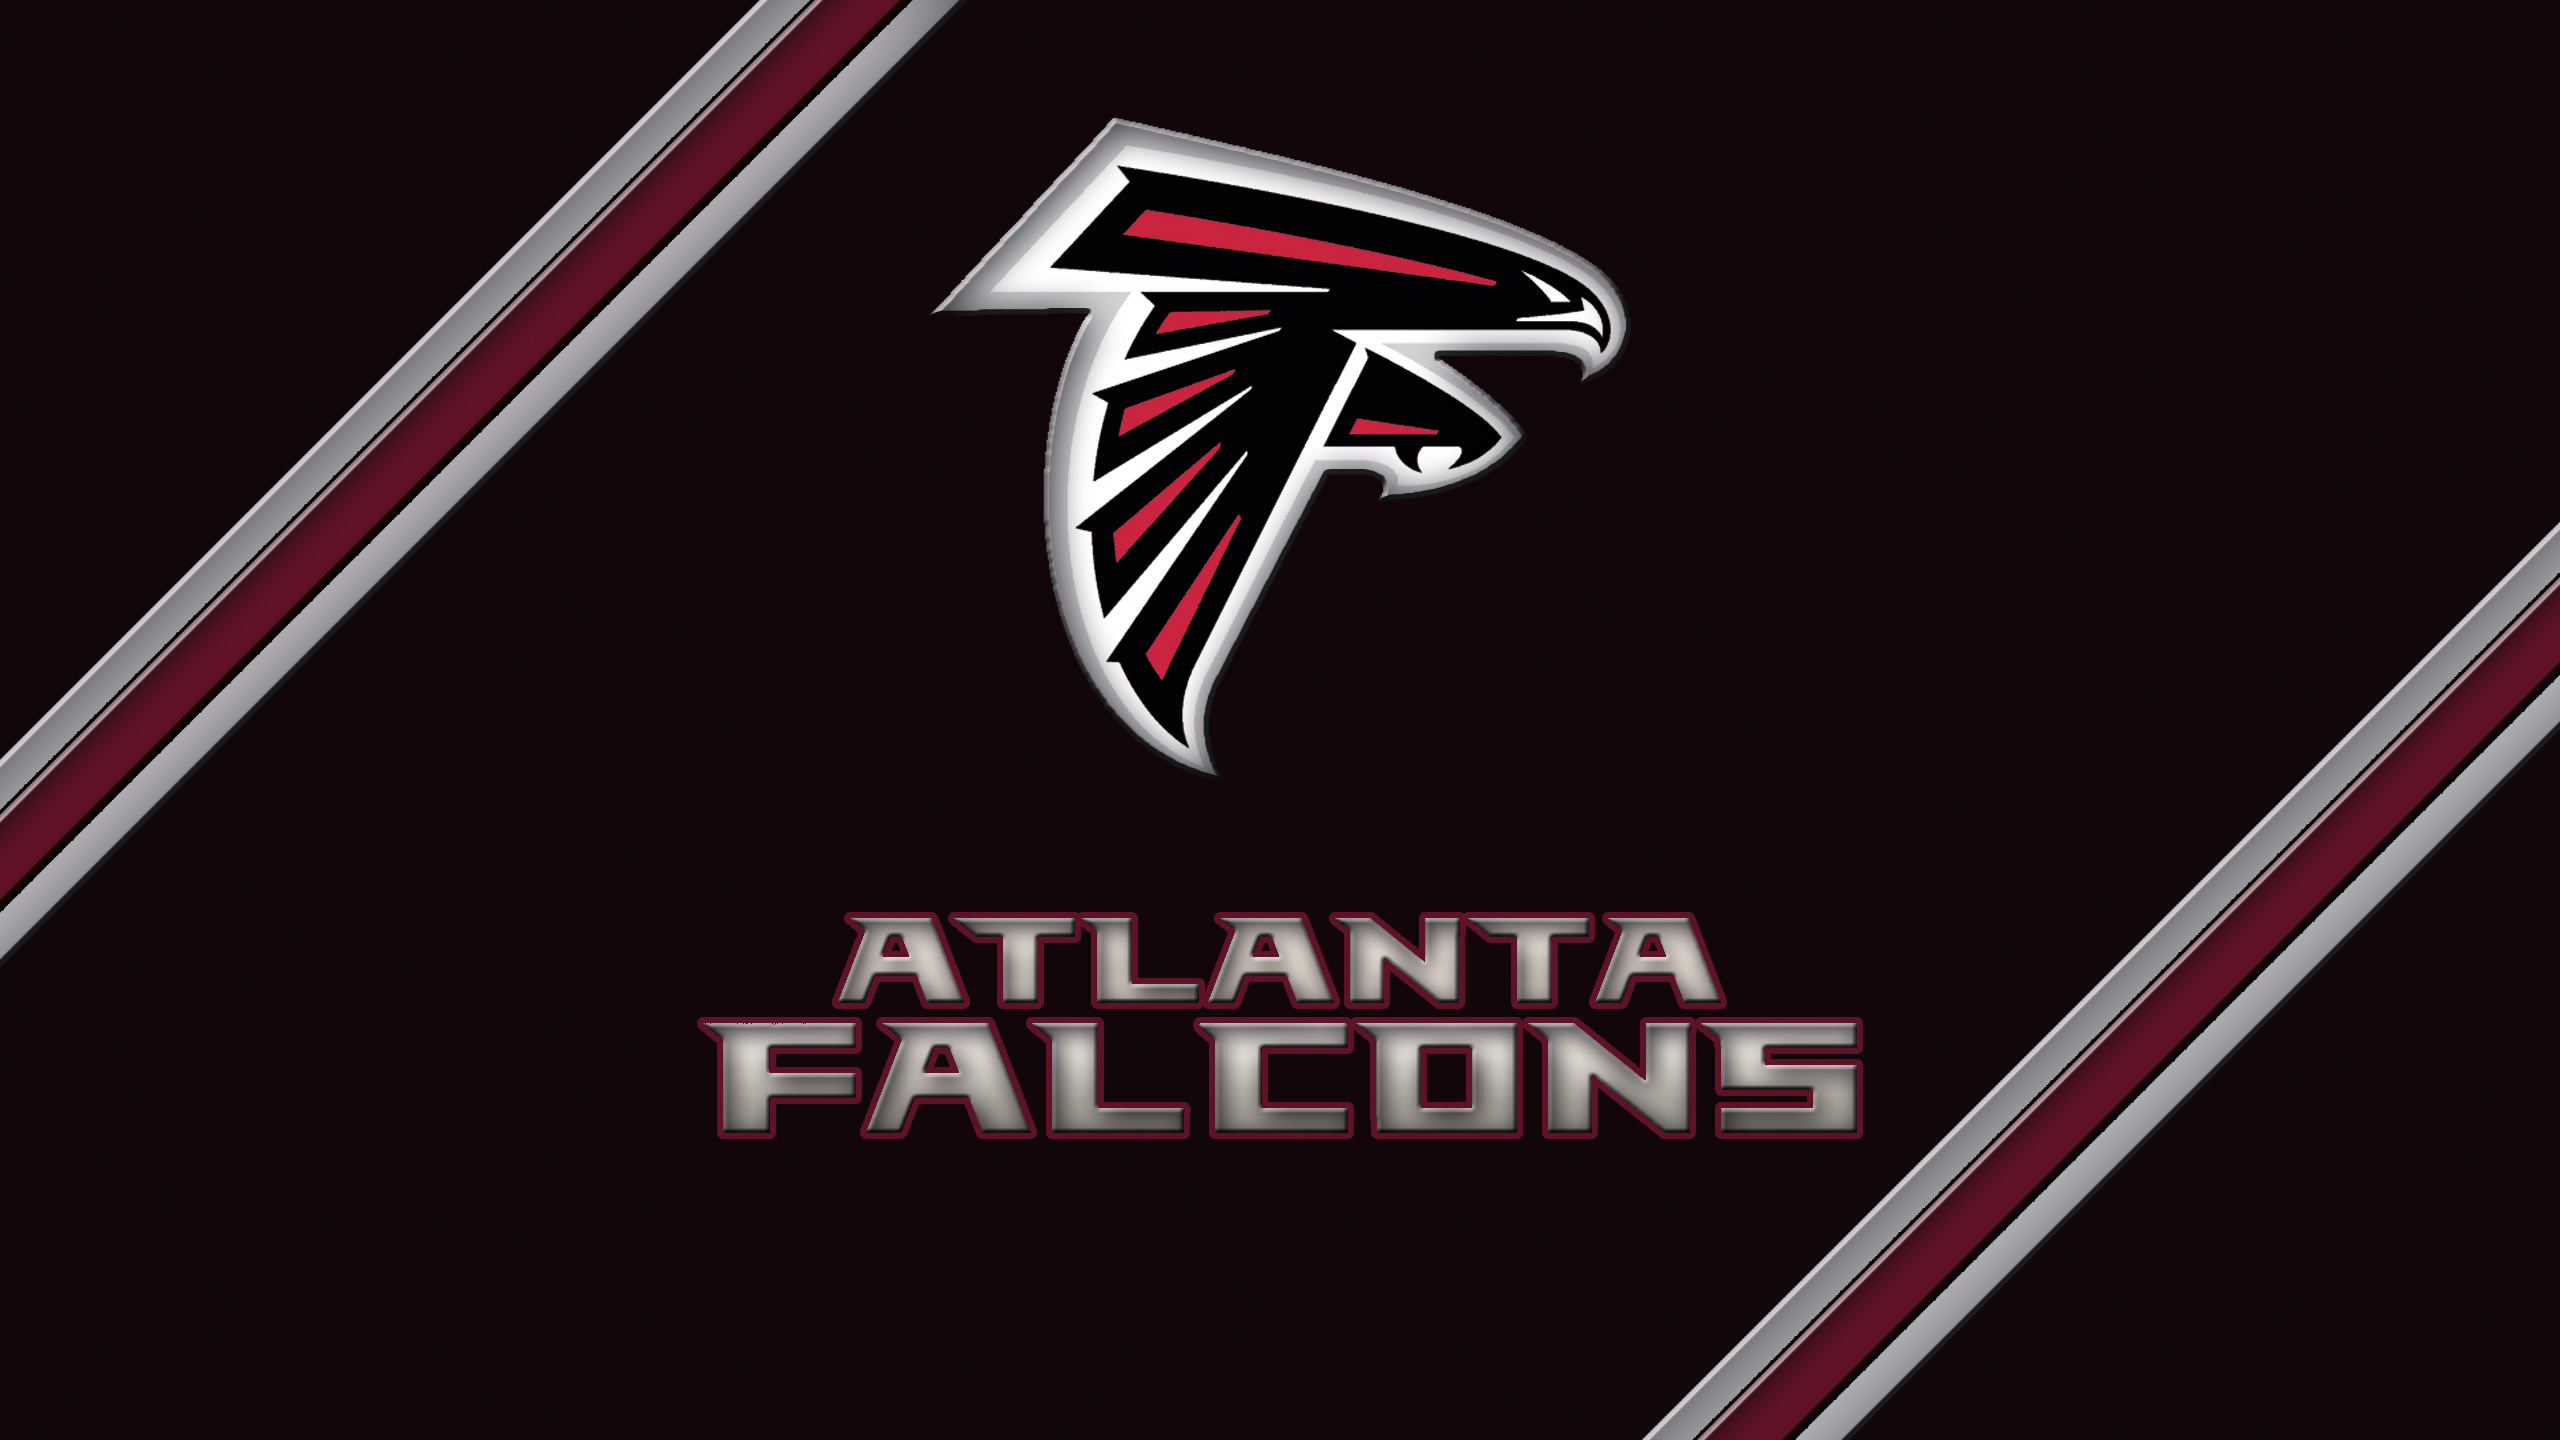 atlanta falcons desktop wallpaper